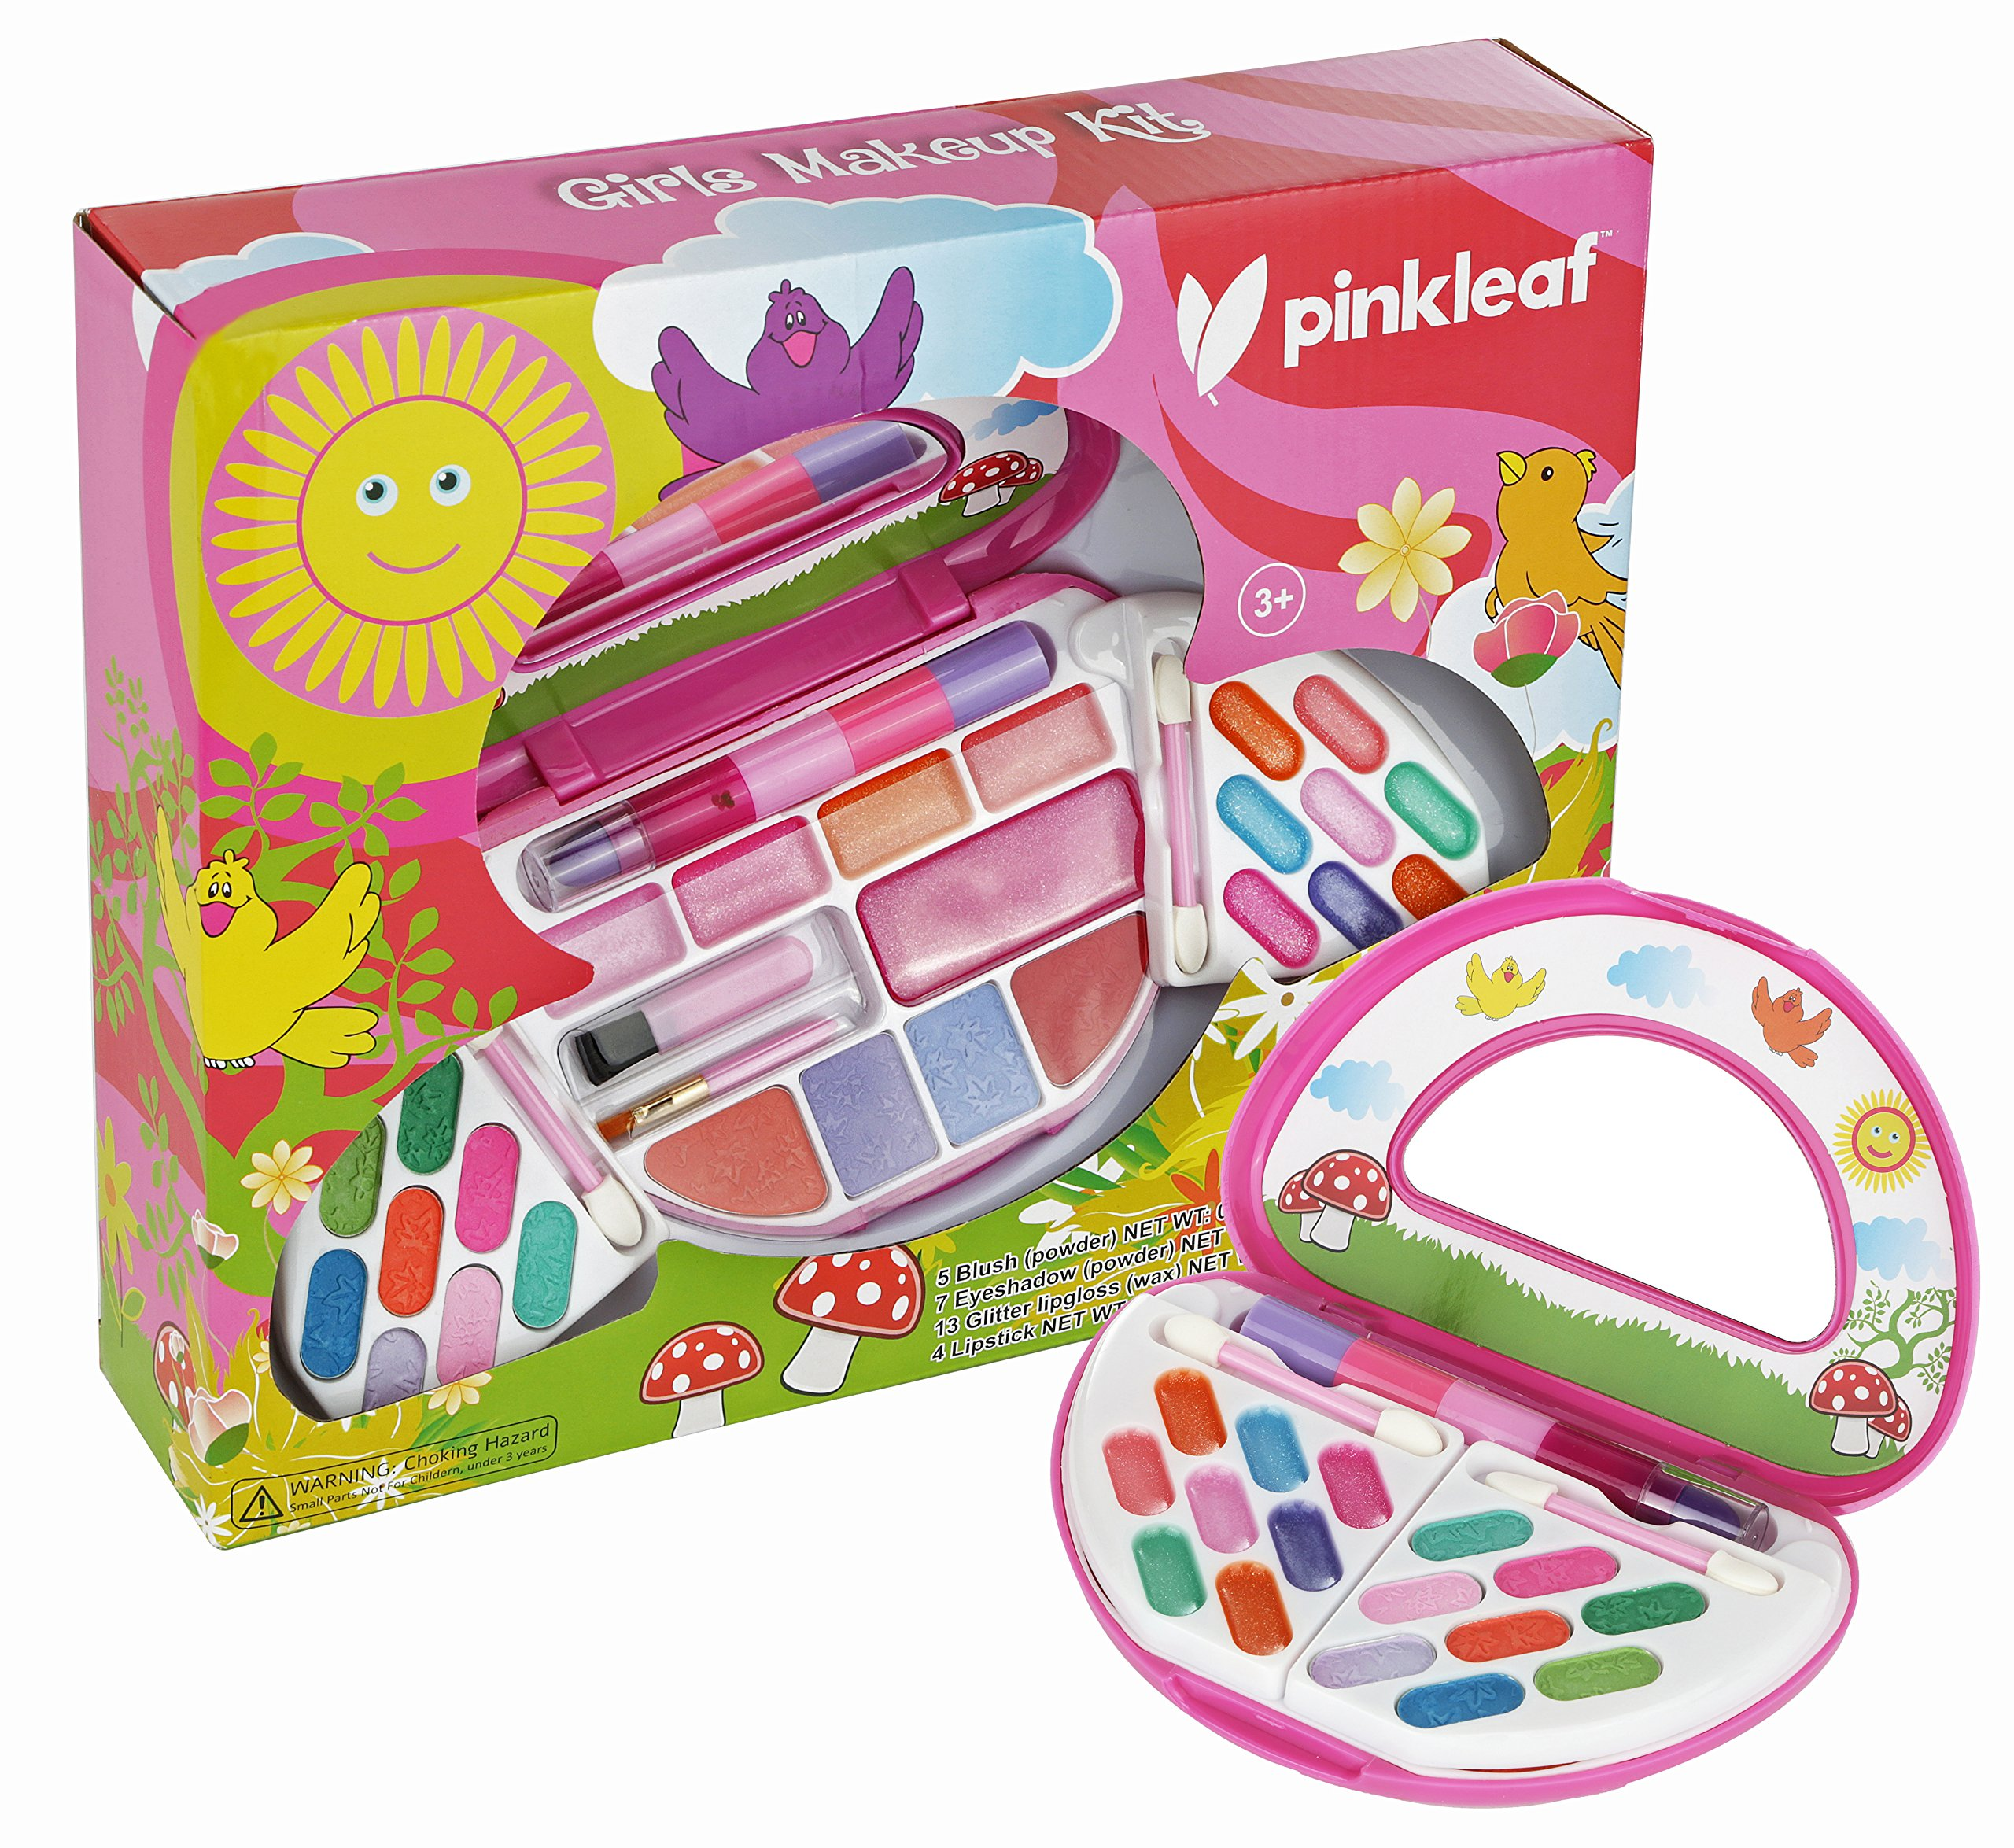 Kids Makeup Kit for Girls - Toddler Toys - Safe & Non-Toxic Cosmetics for Toddlers & Preschoolers - Pink Folding Cosmetics Palette Gift Set with Small Beauty Mirror, Washable Makeup Set by Pinkleaf